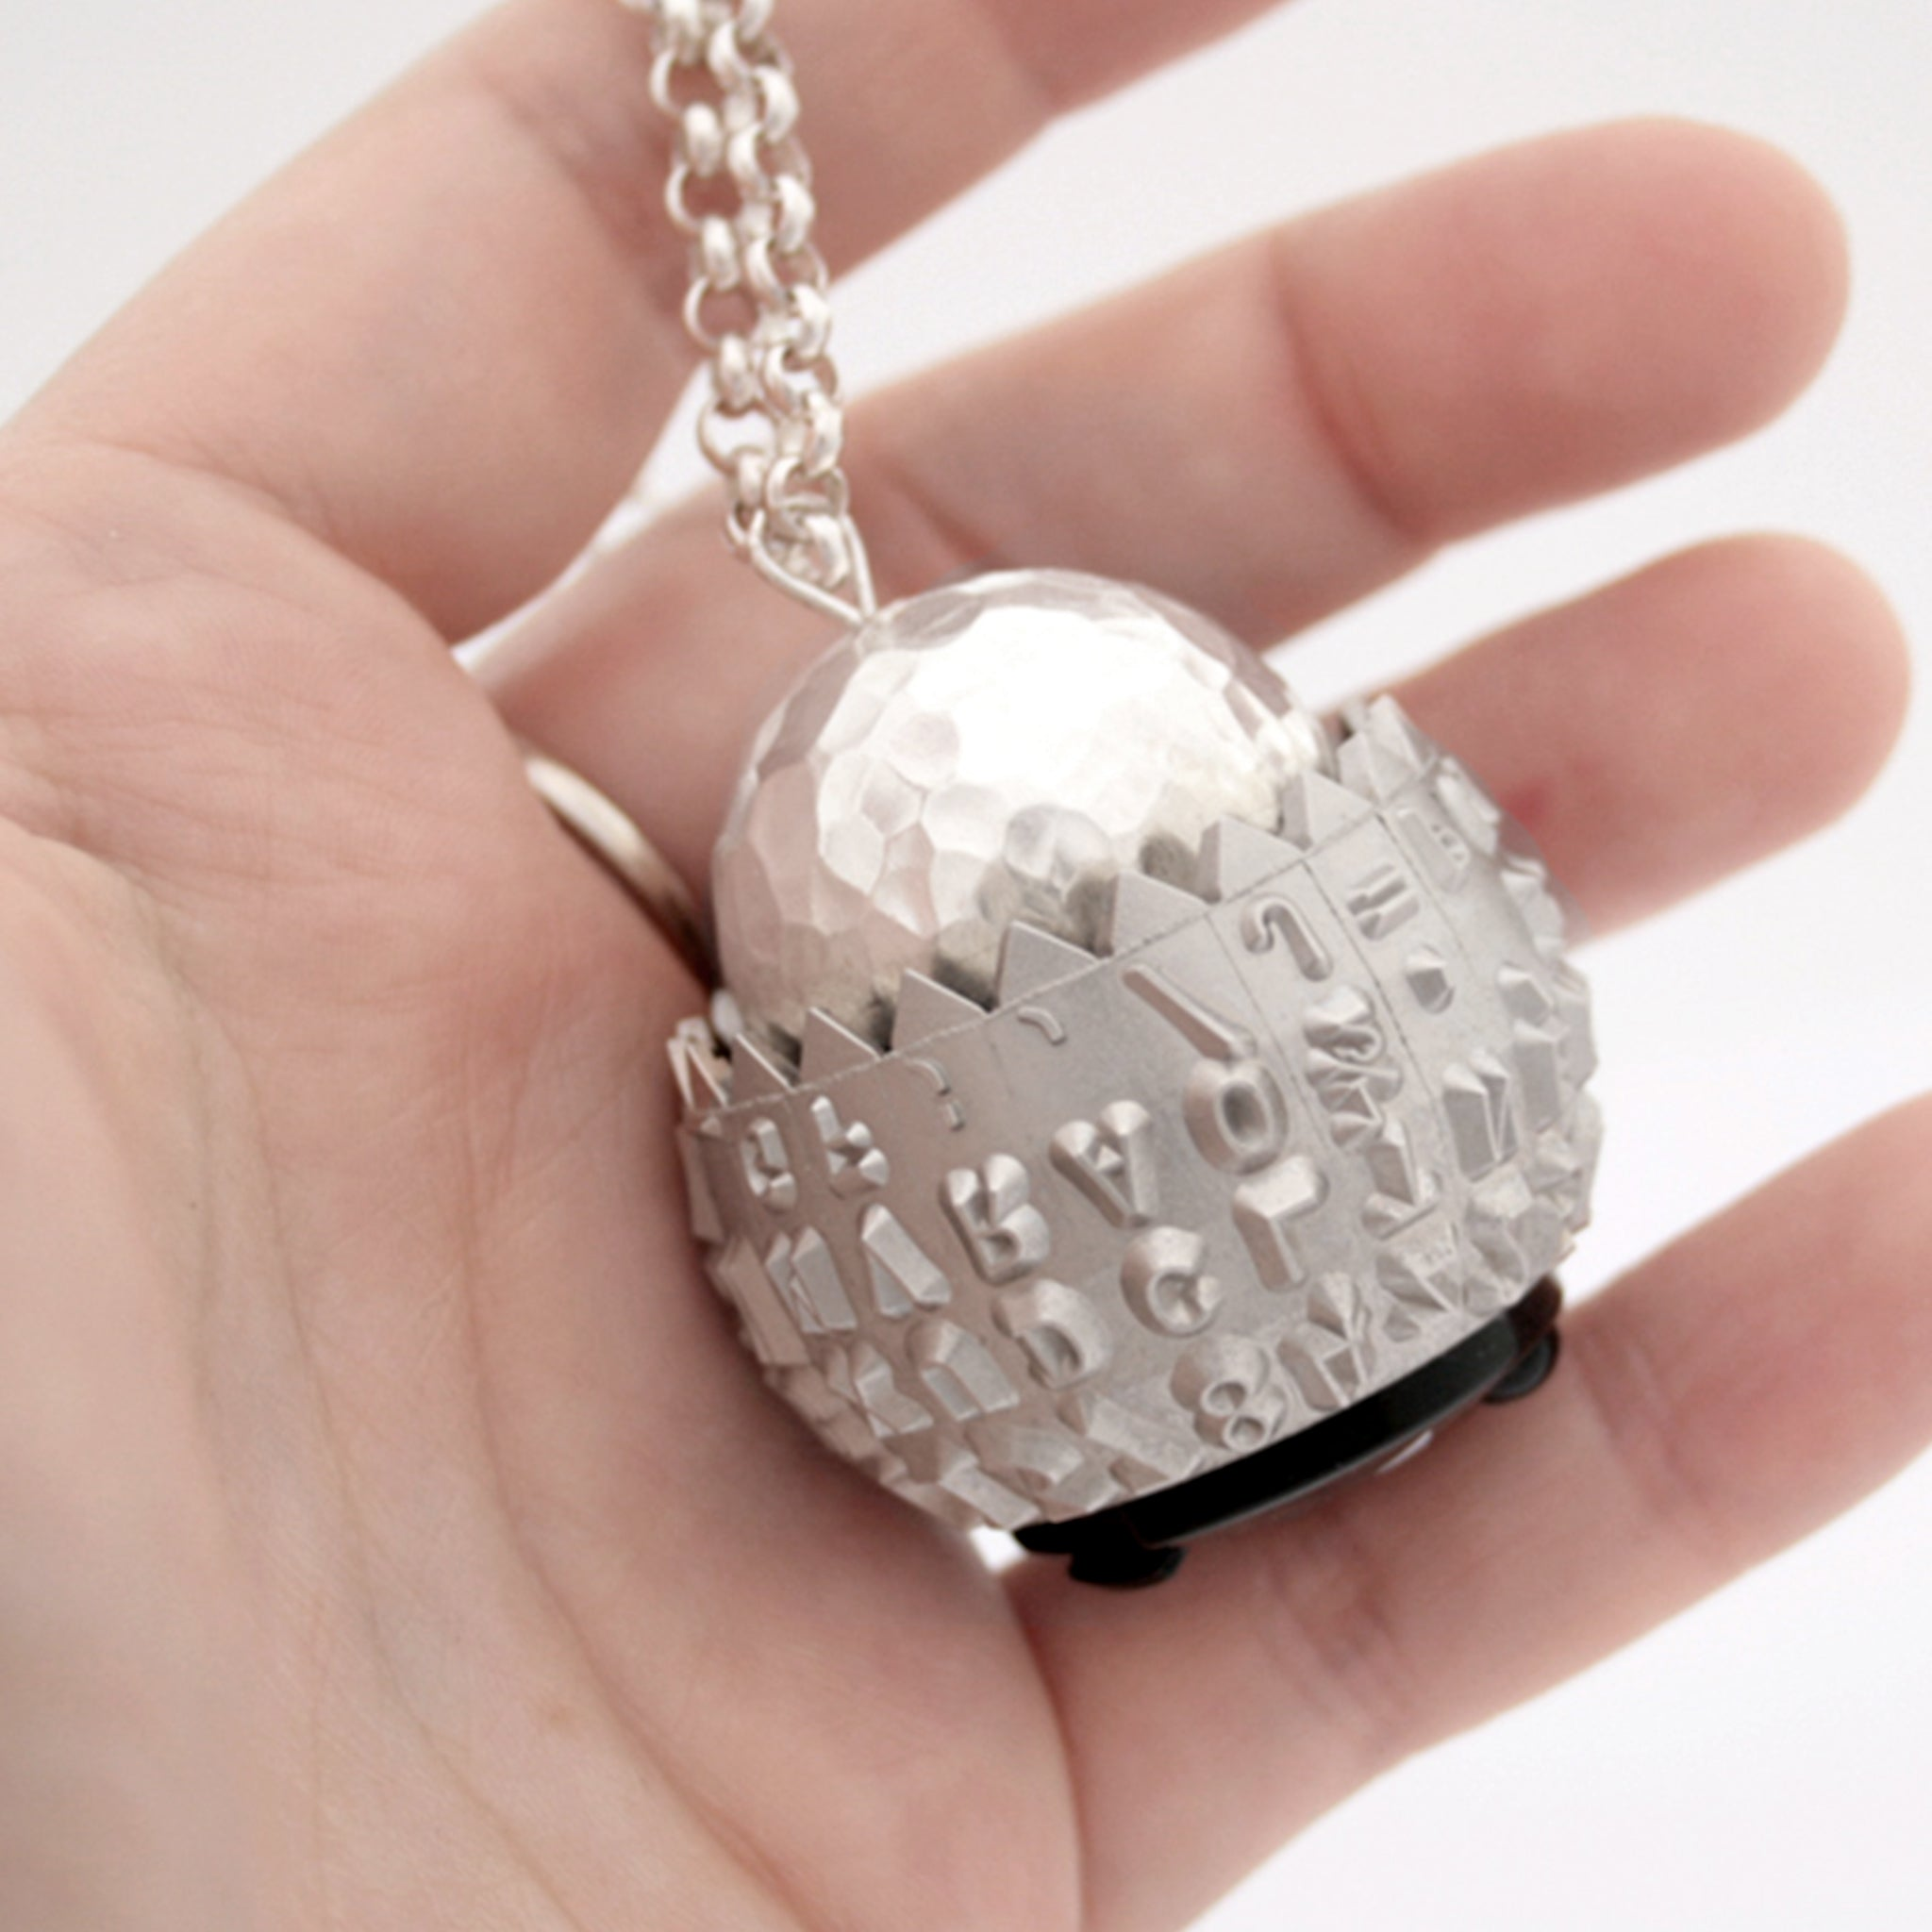 IBM Selectric typeball with sterling silver bead turned into quirky necklace